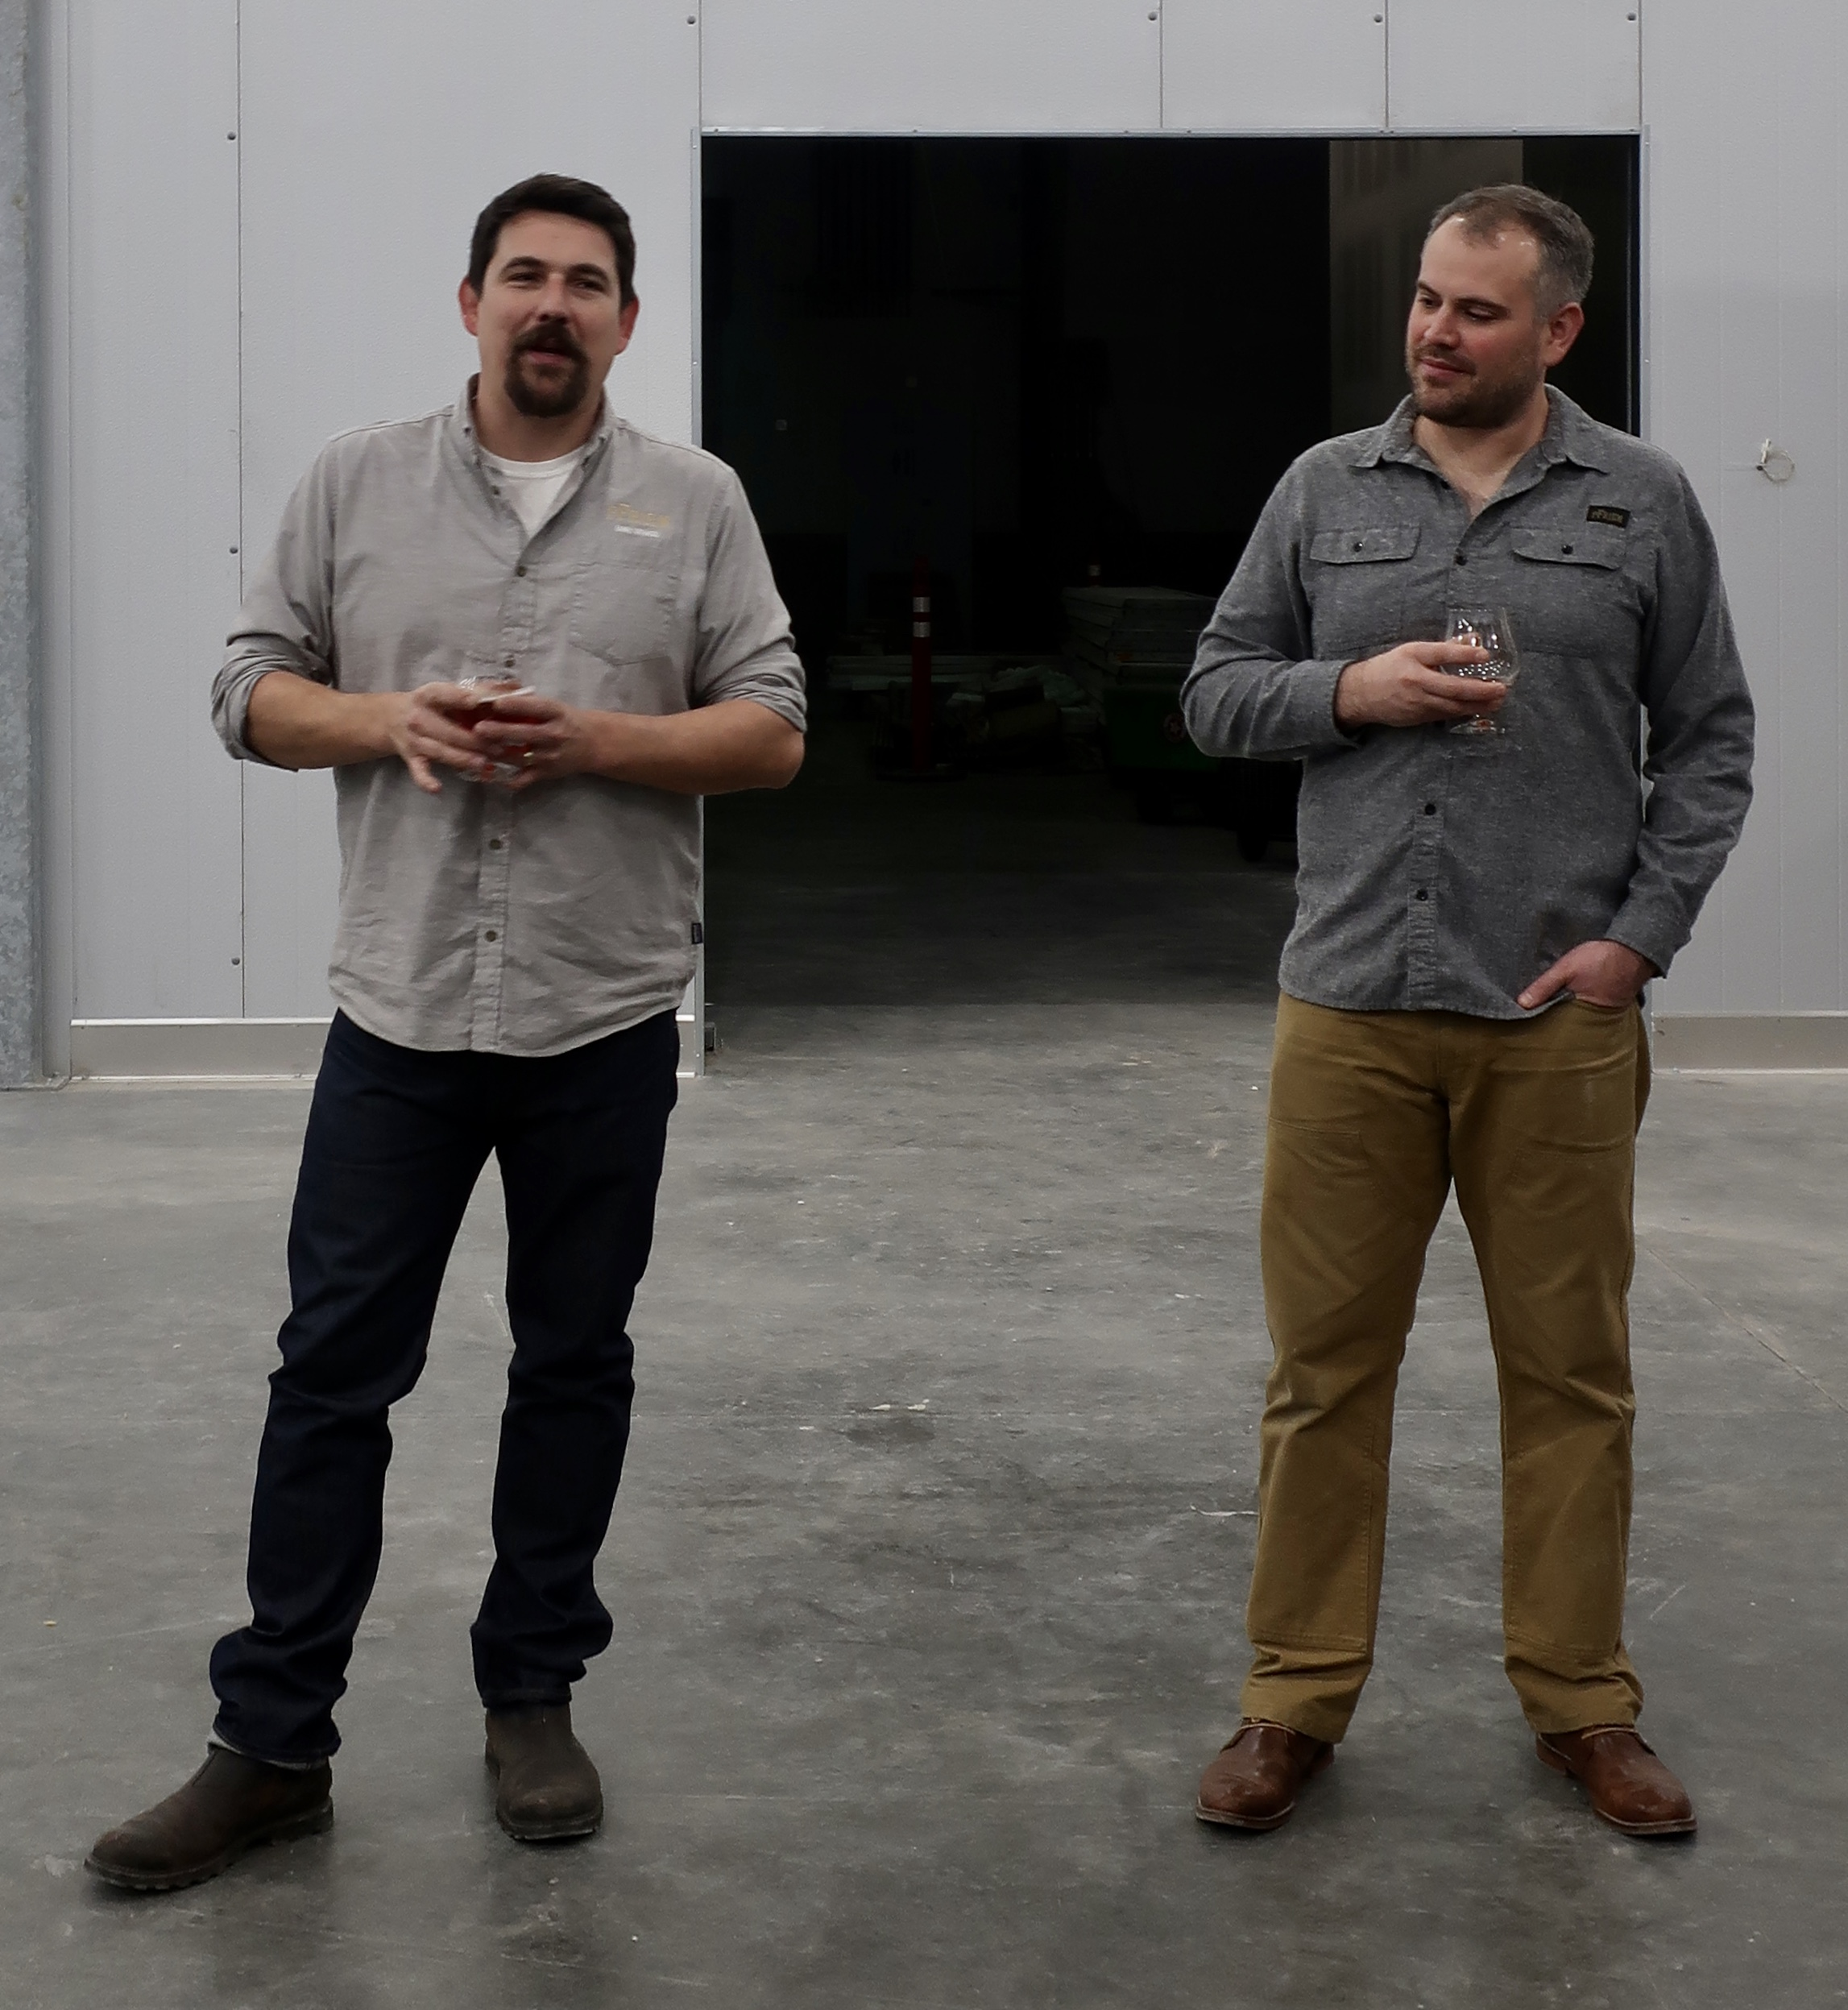 Gavin Lord and Bryan Cardwell discussing plans while taking a peek at the forthcoming pFriem Family Brewers location in Cascade Locks, Oregon.